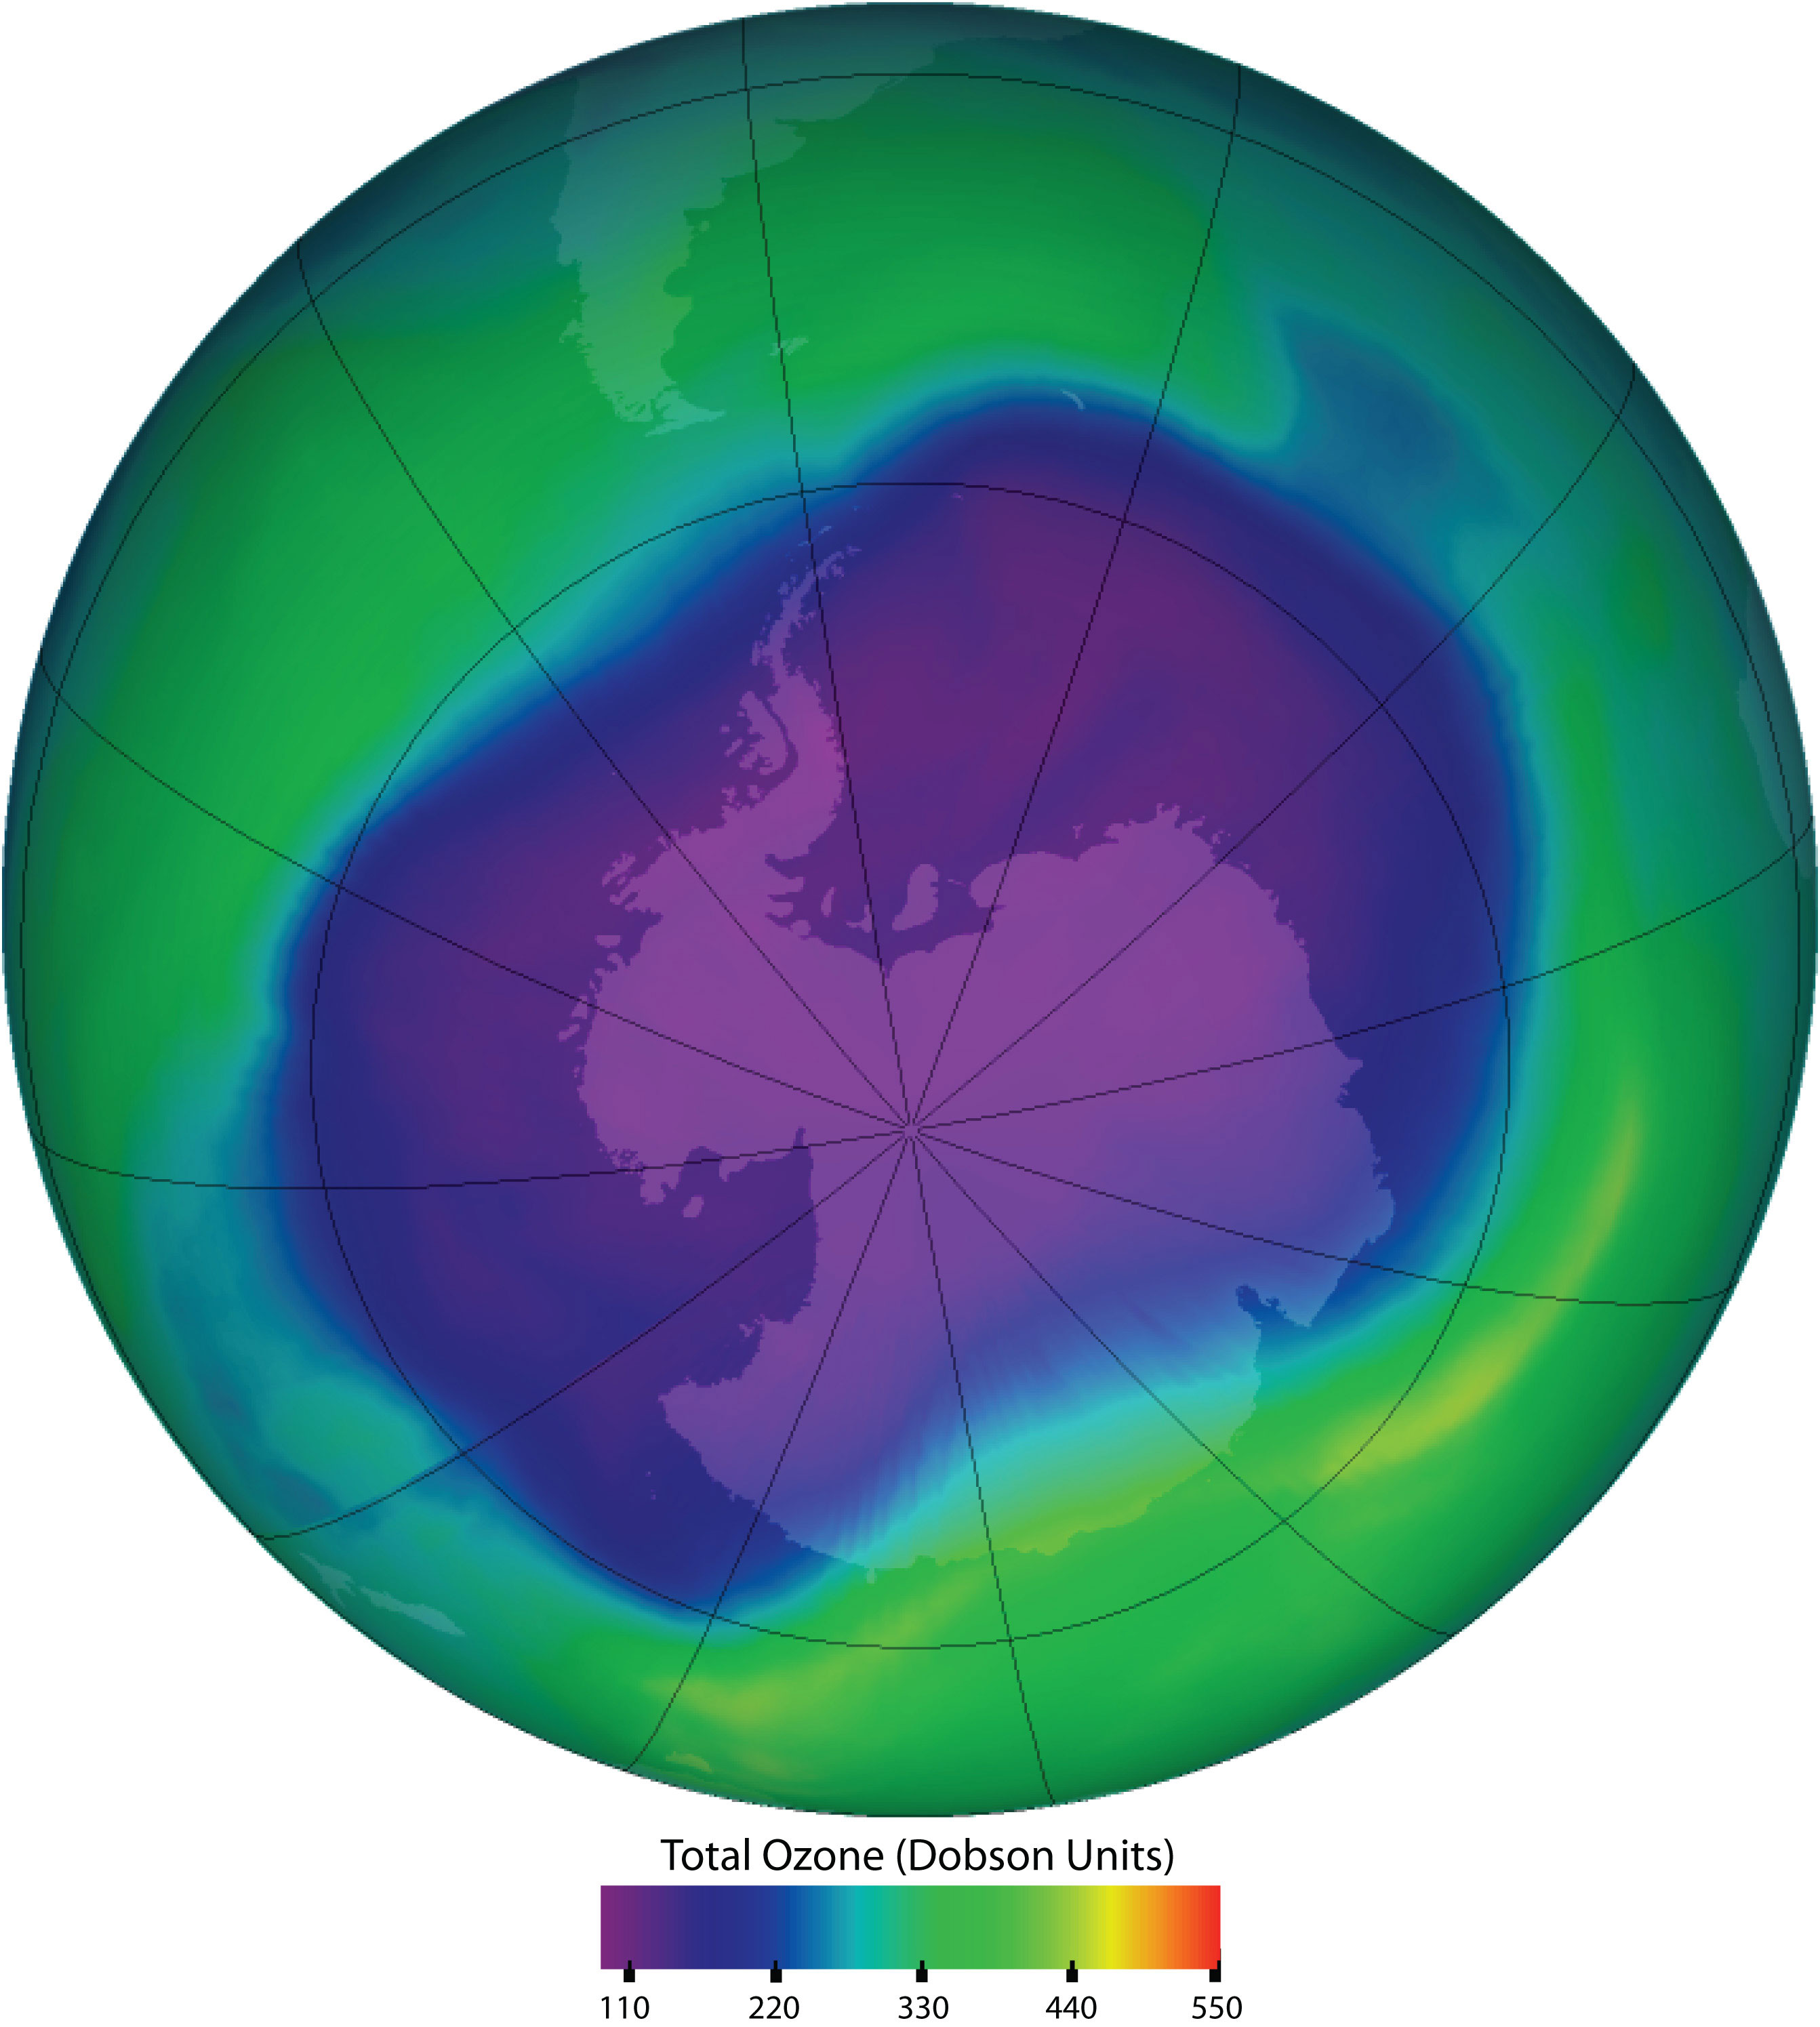 This NASA picture indicates atmospheric Ozone depletion as a consequence of human greenhouse gas production.